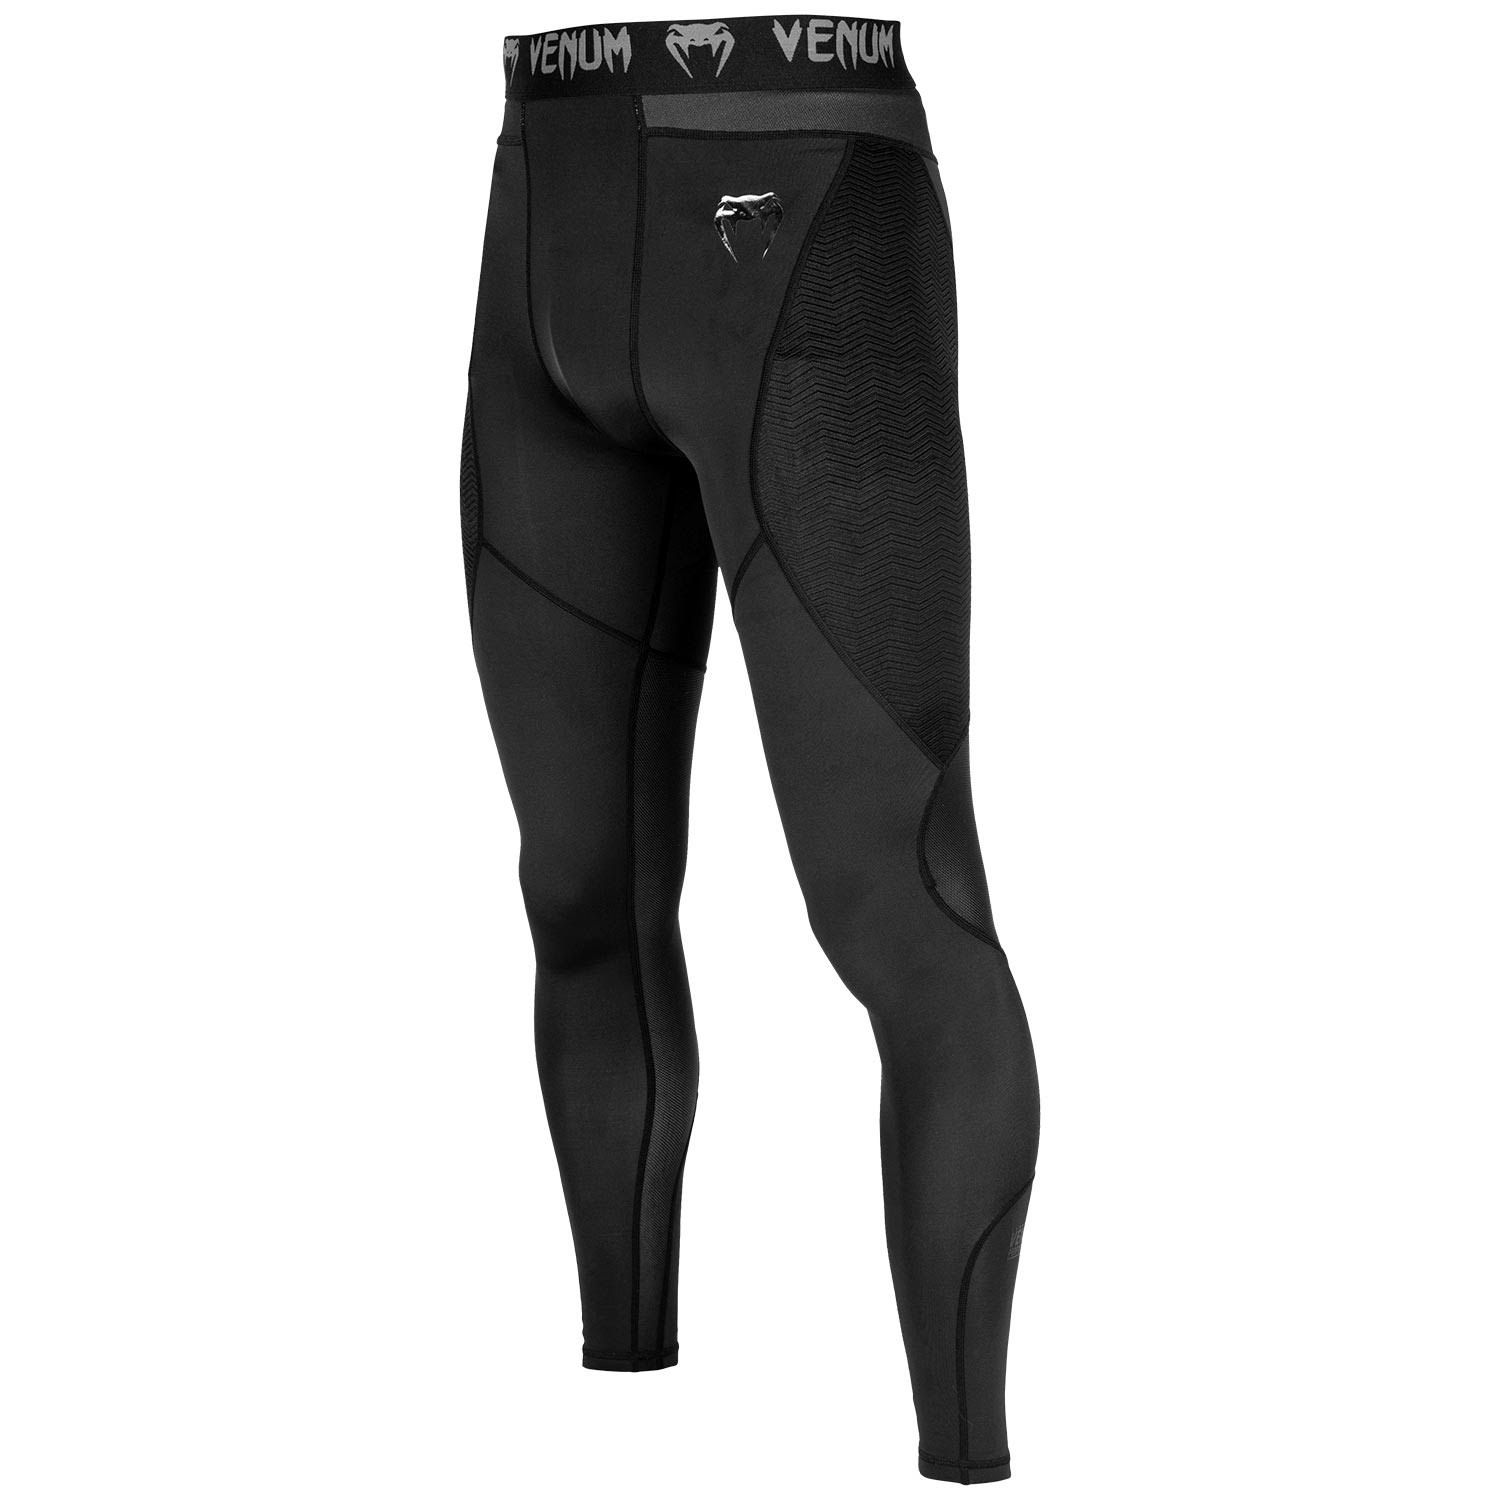 Pantalon de compression Venum G-fit